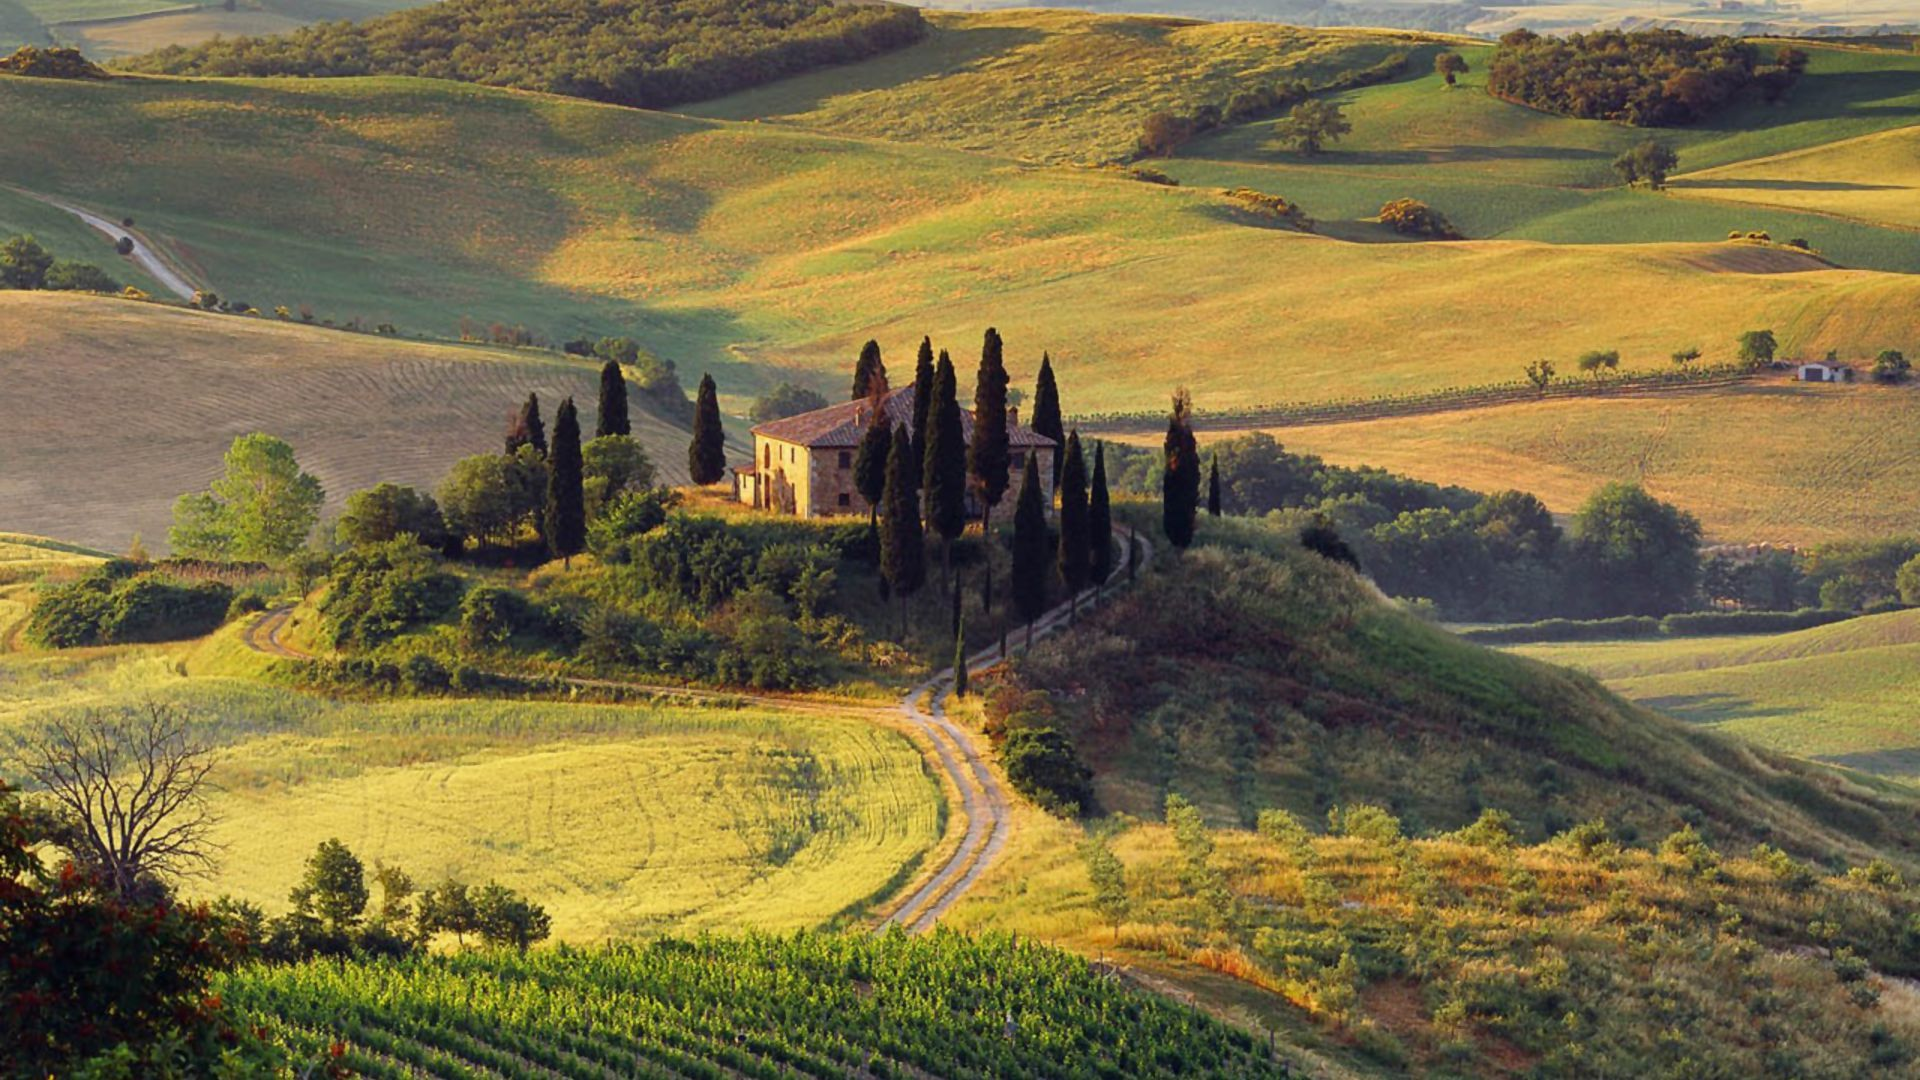 Download At Wallpaperbro: 65+ Tuscan Landscape Wallpapers